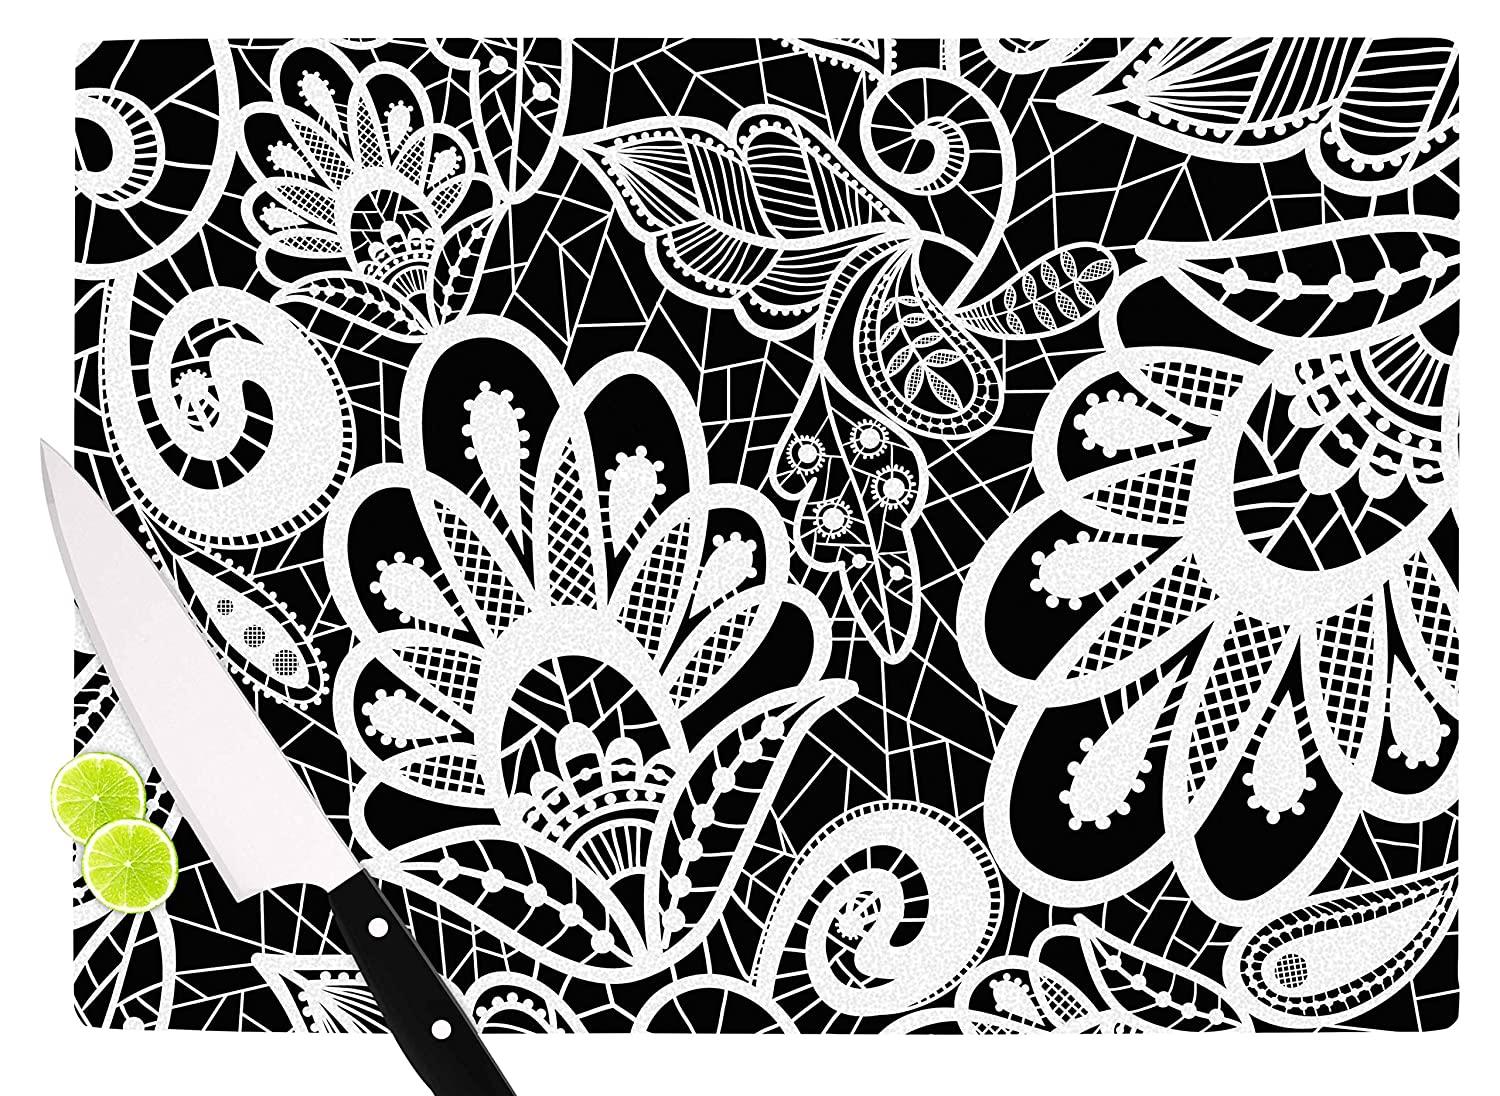 KESS InHouse MF1013ACB01 Petit GriffinFloral Lace BW Abstract Modern Cutting Board 11.5 x 8.25 Multi